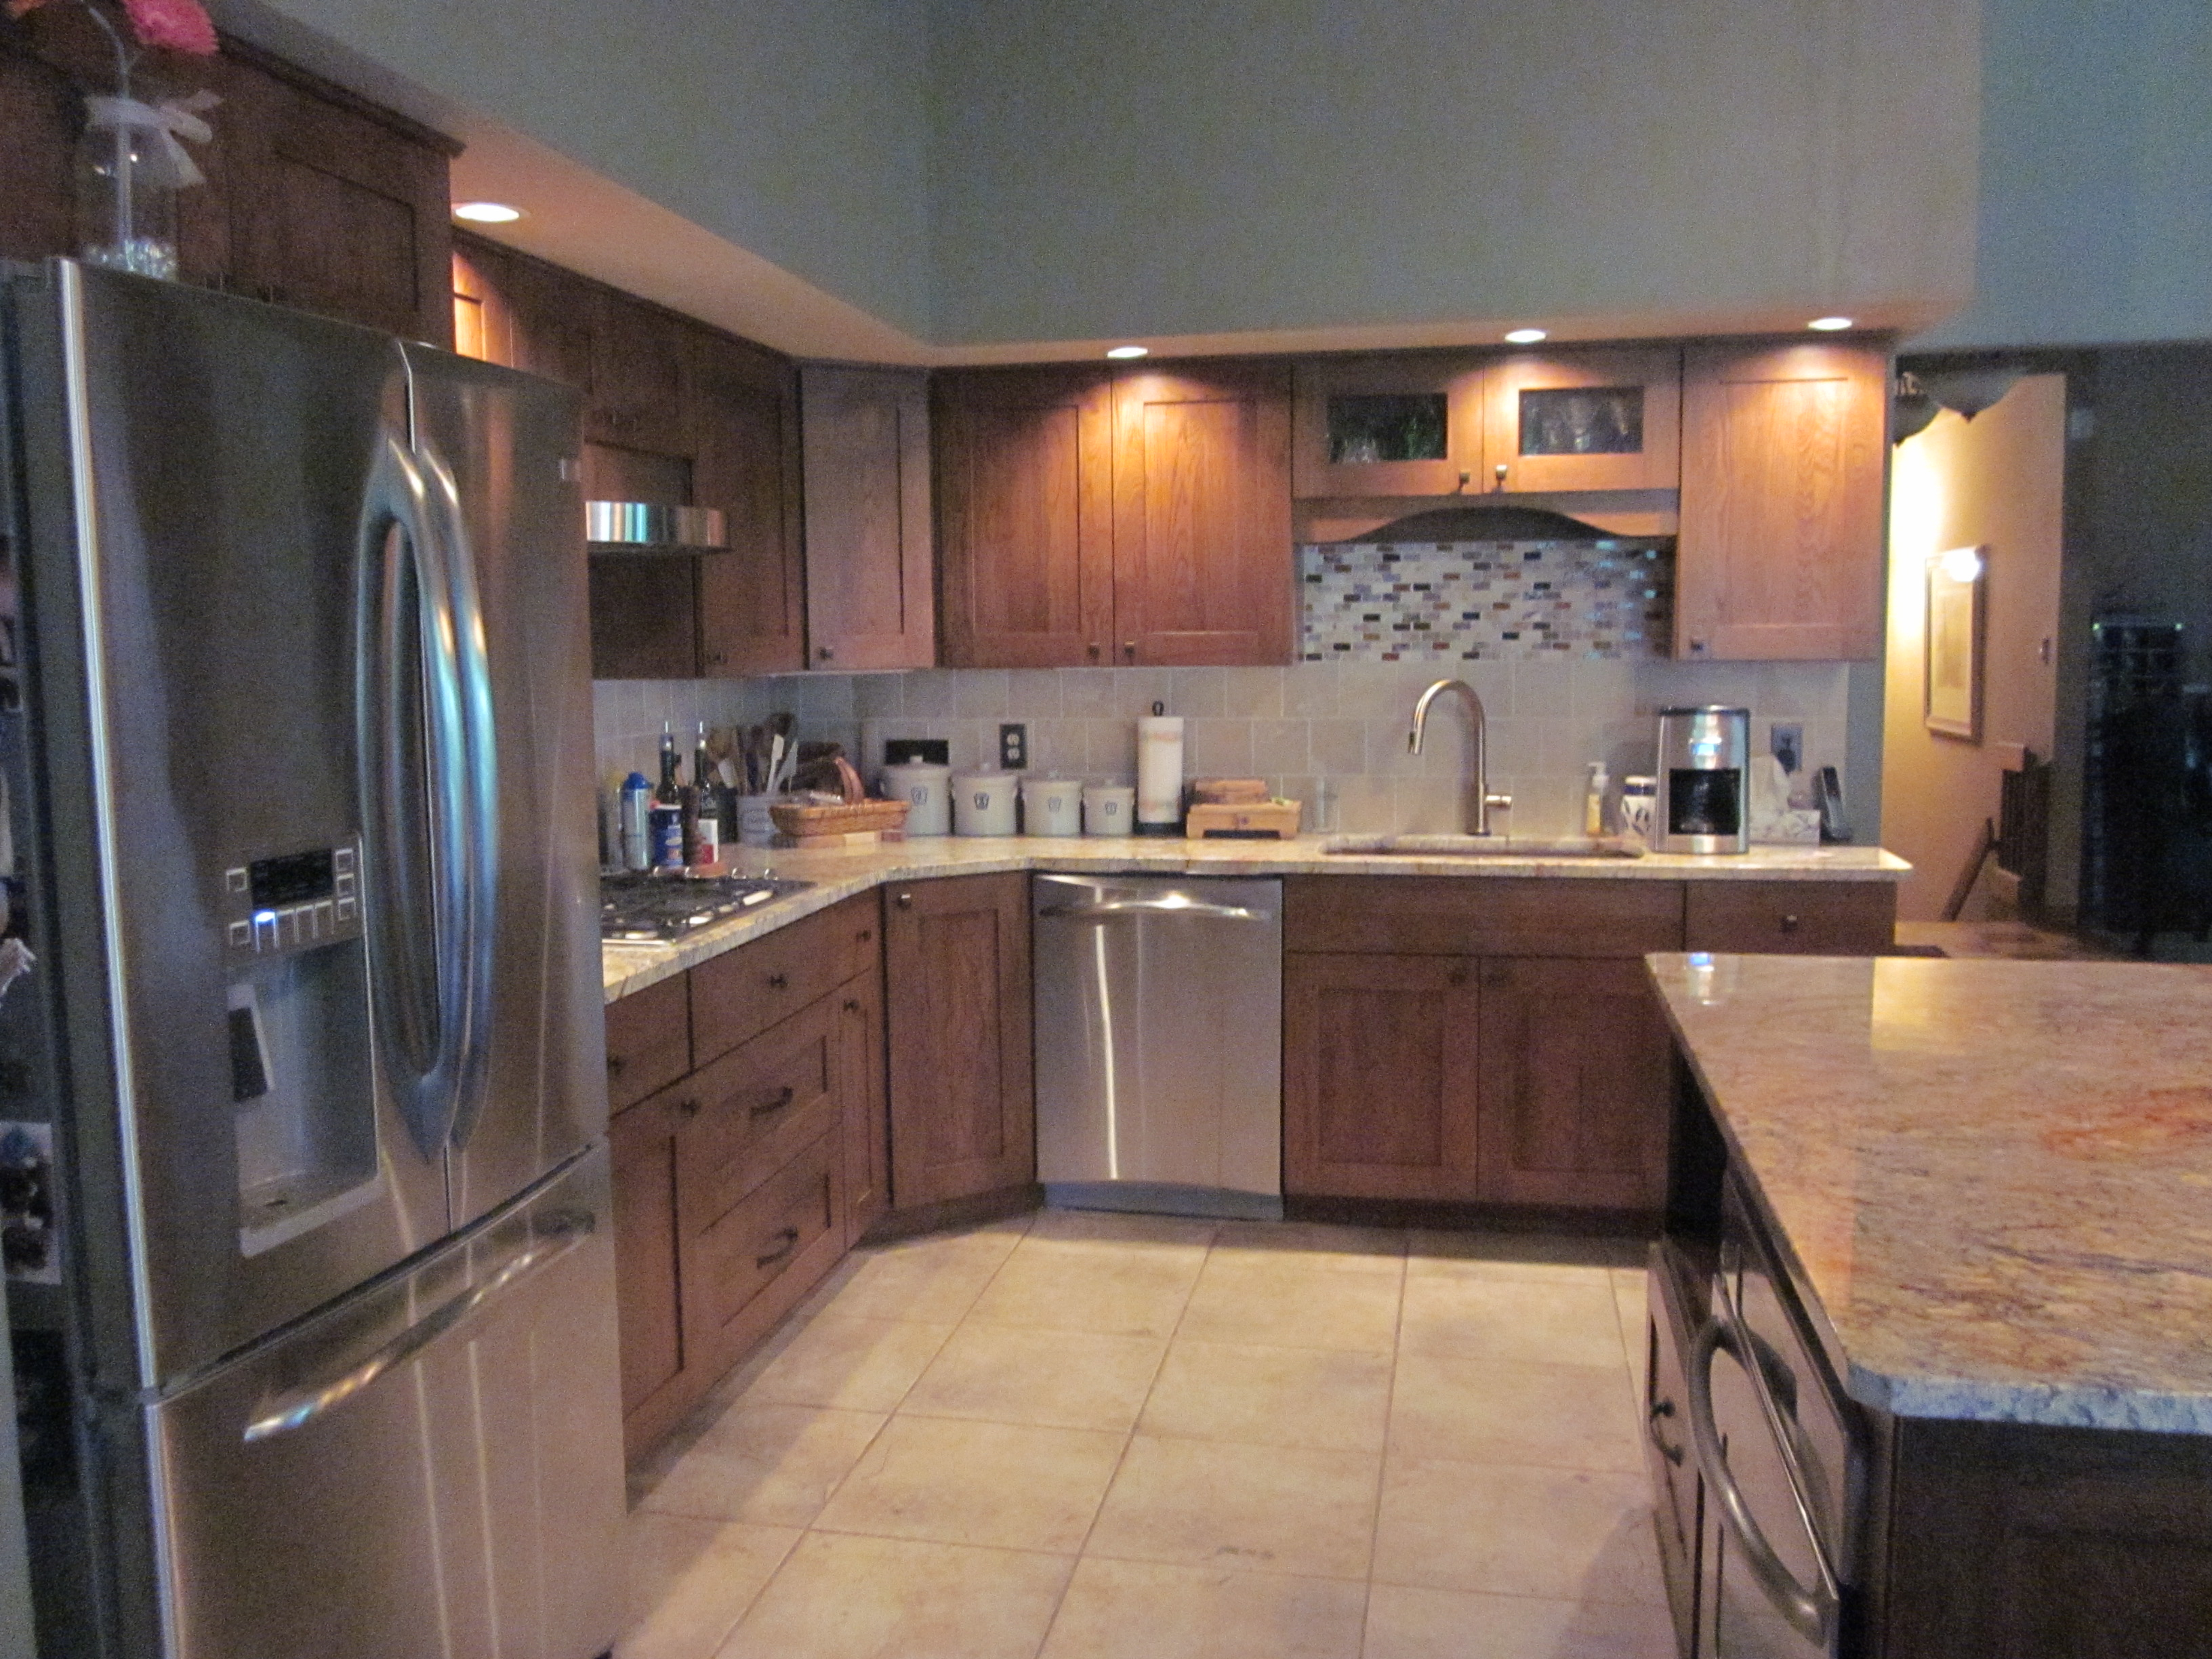 rustic kitchen remodel 5350 12 - kitchens by diane - rockford, il